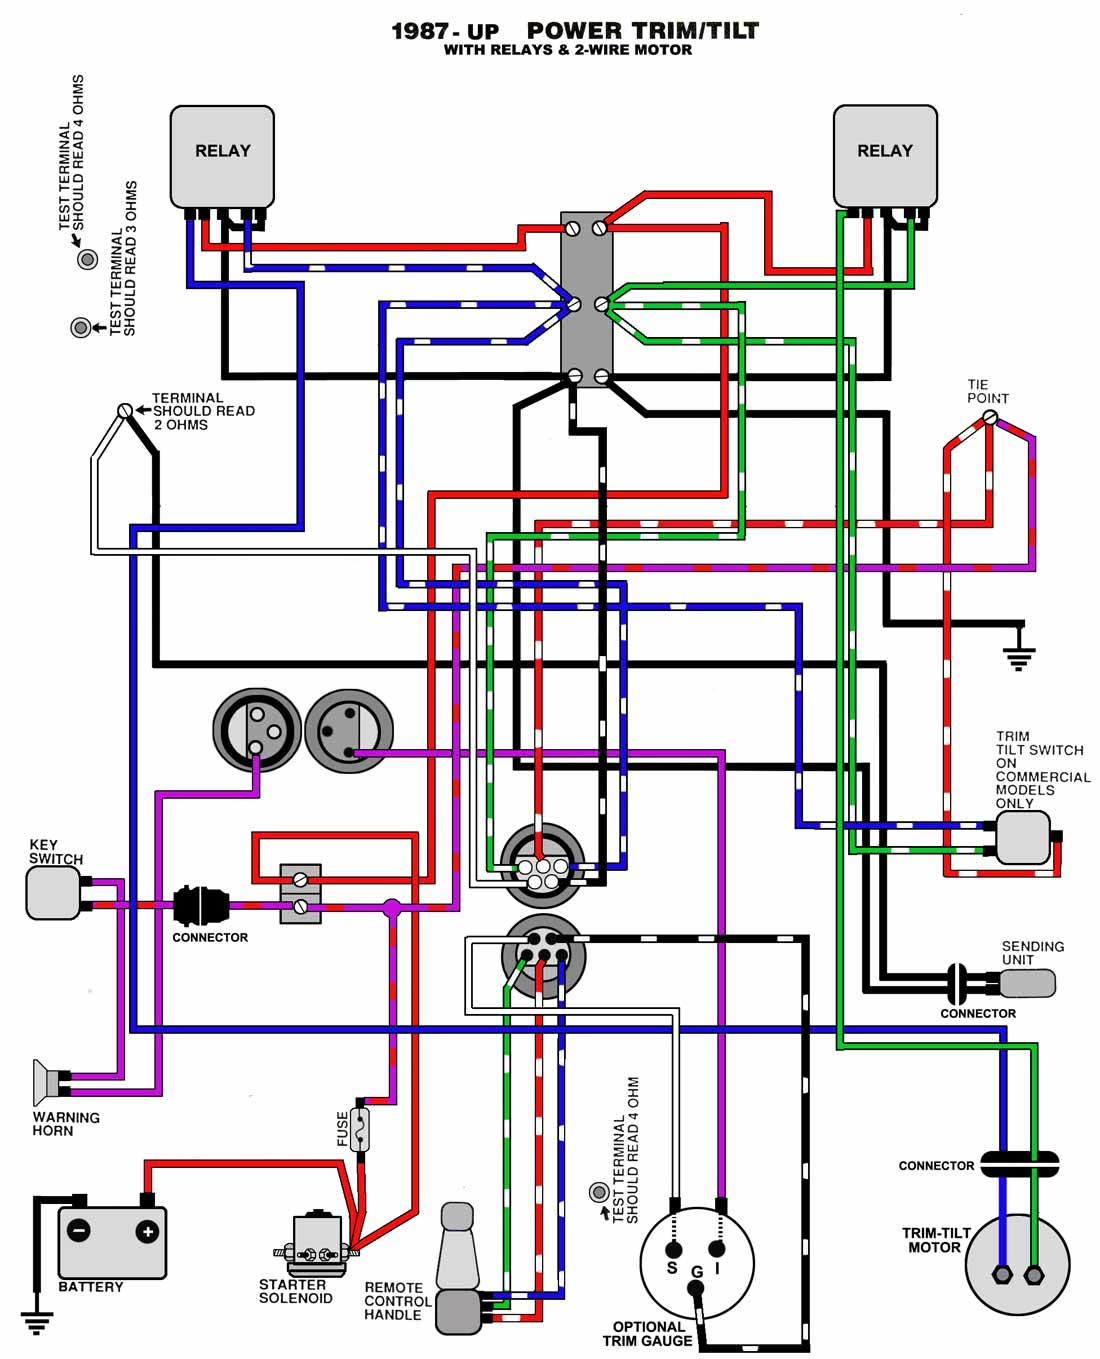 TnT_87_UP mastertech marine evinrude johnson outboard wiring diagrams 115 hp mercury outboard wiring diagram at readyjetset.co